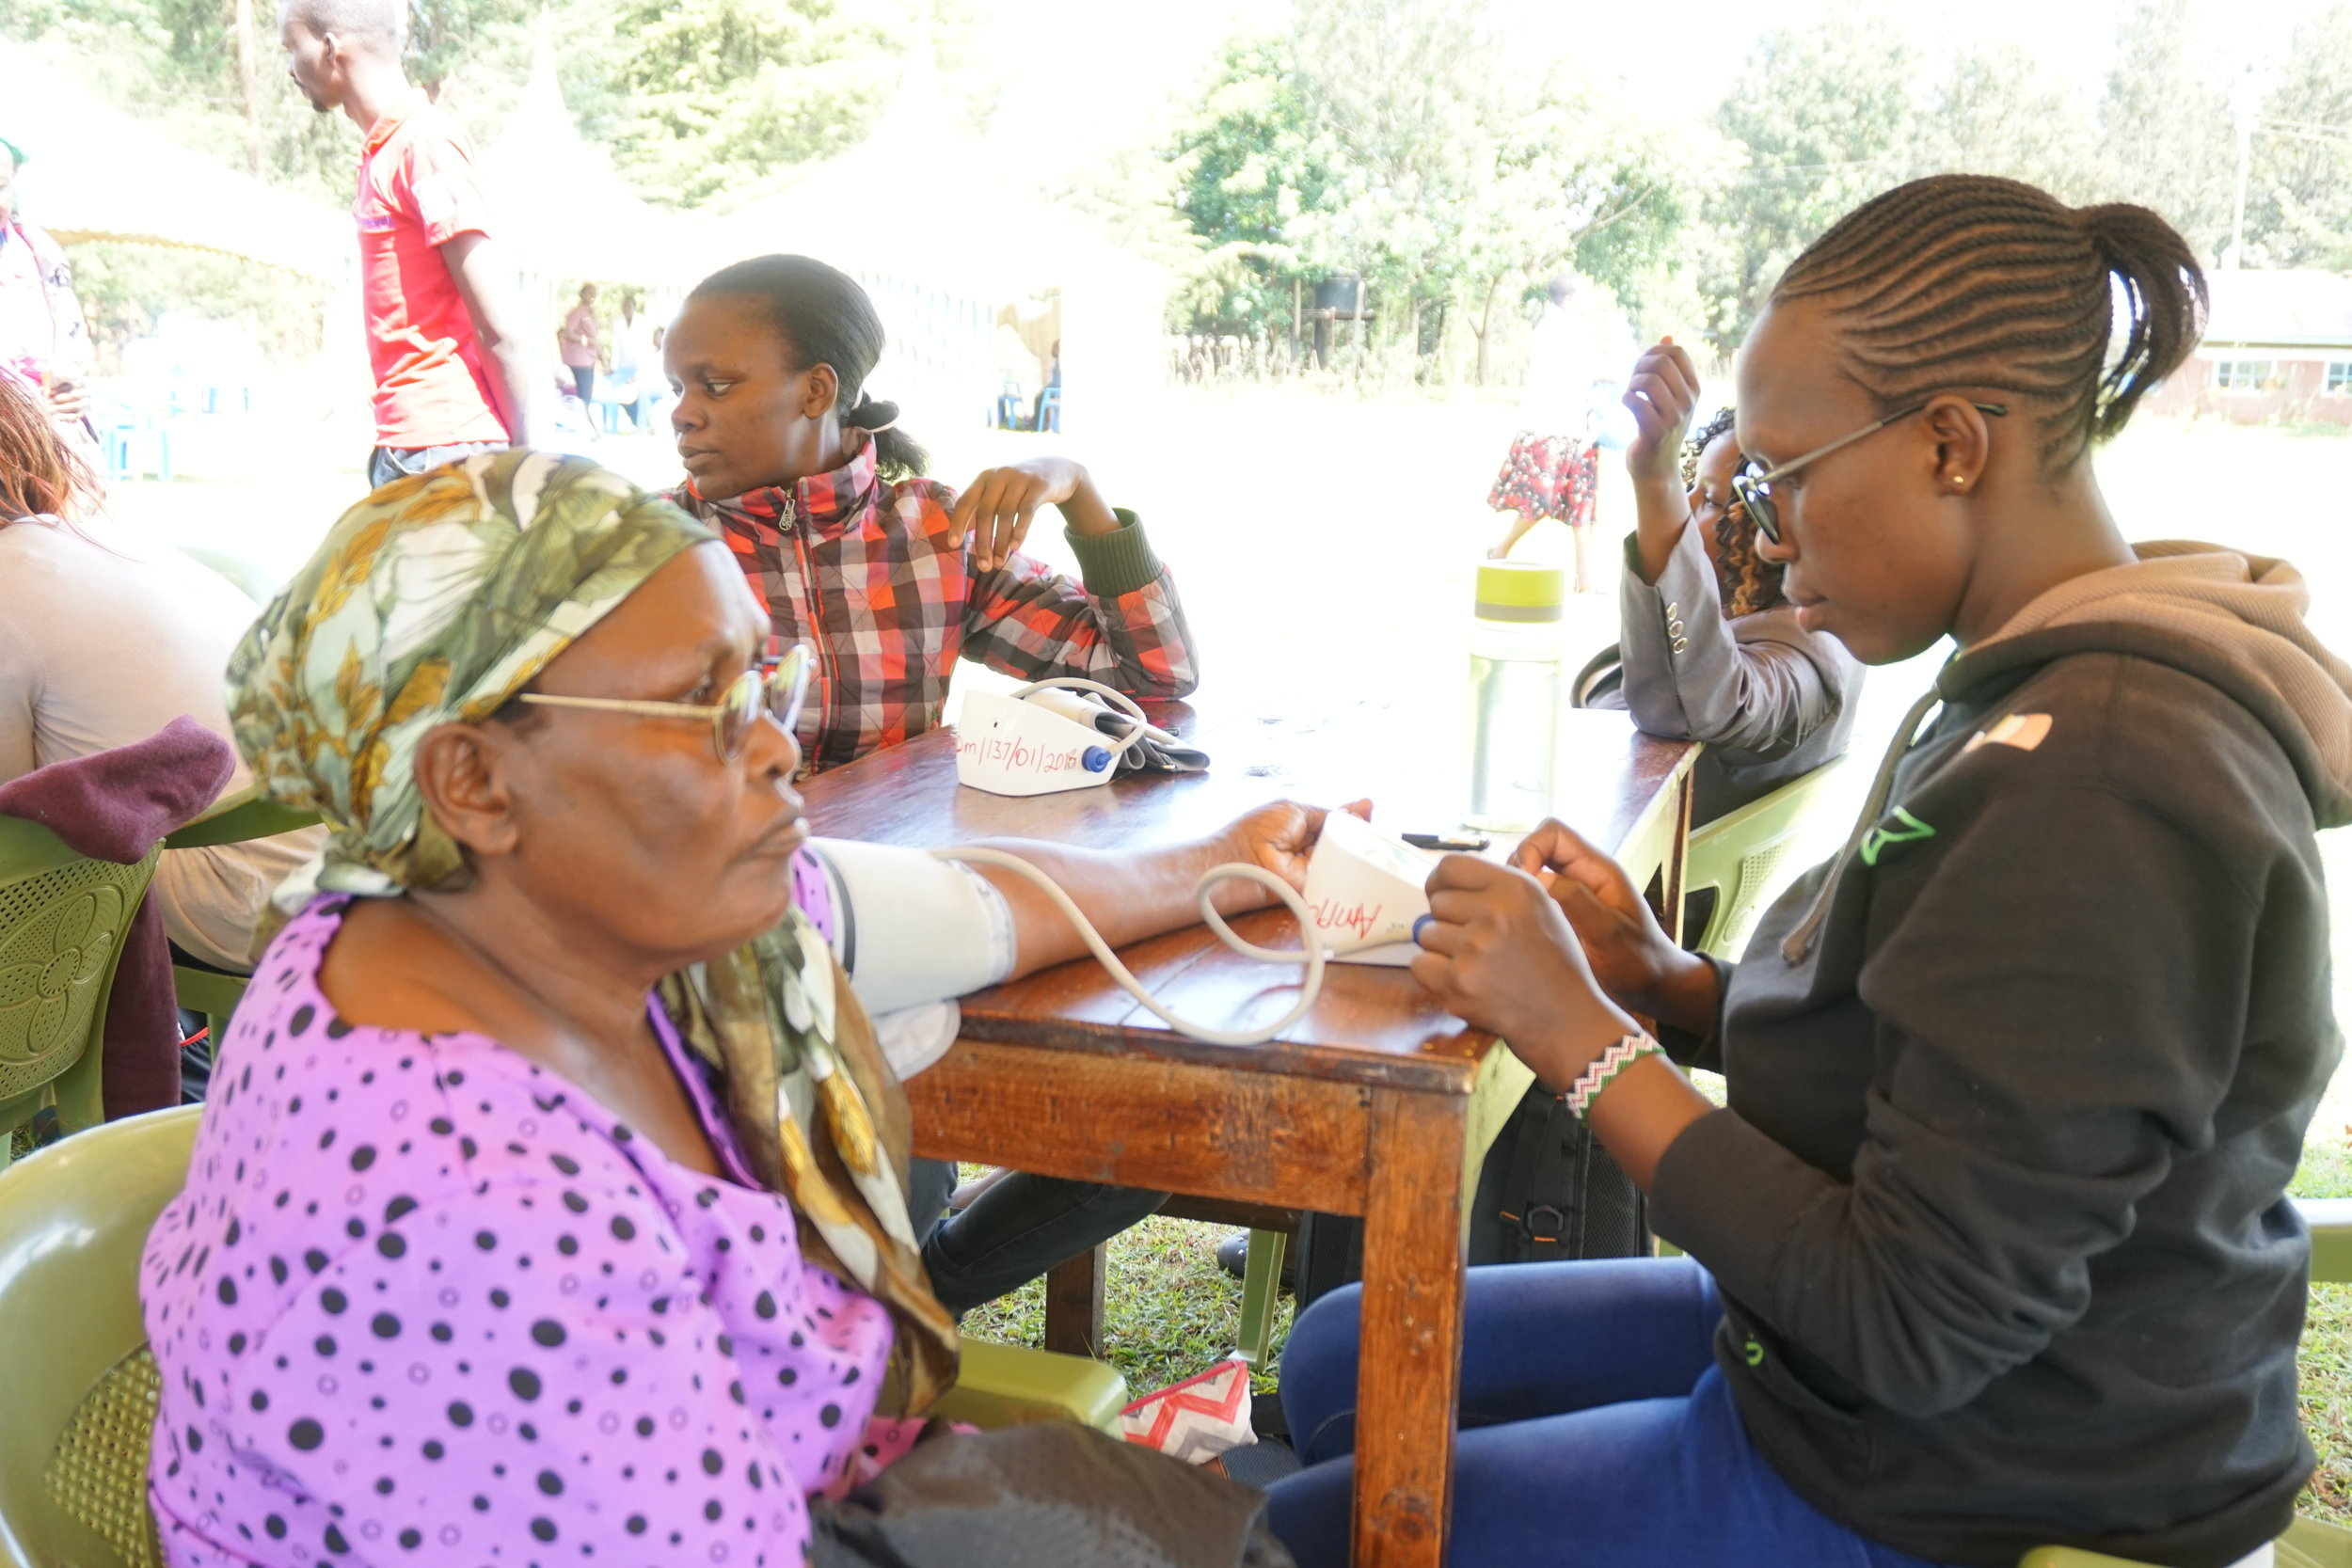 AMPATH staff measure blood pressures at a community screening in Turbo county, Kenya.